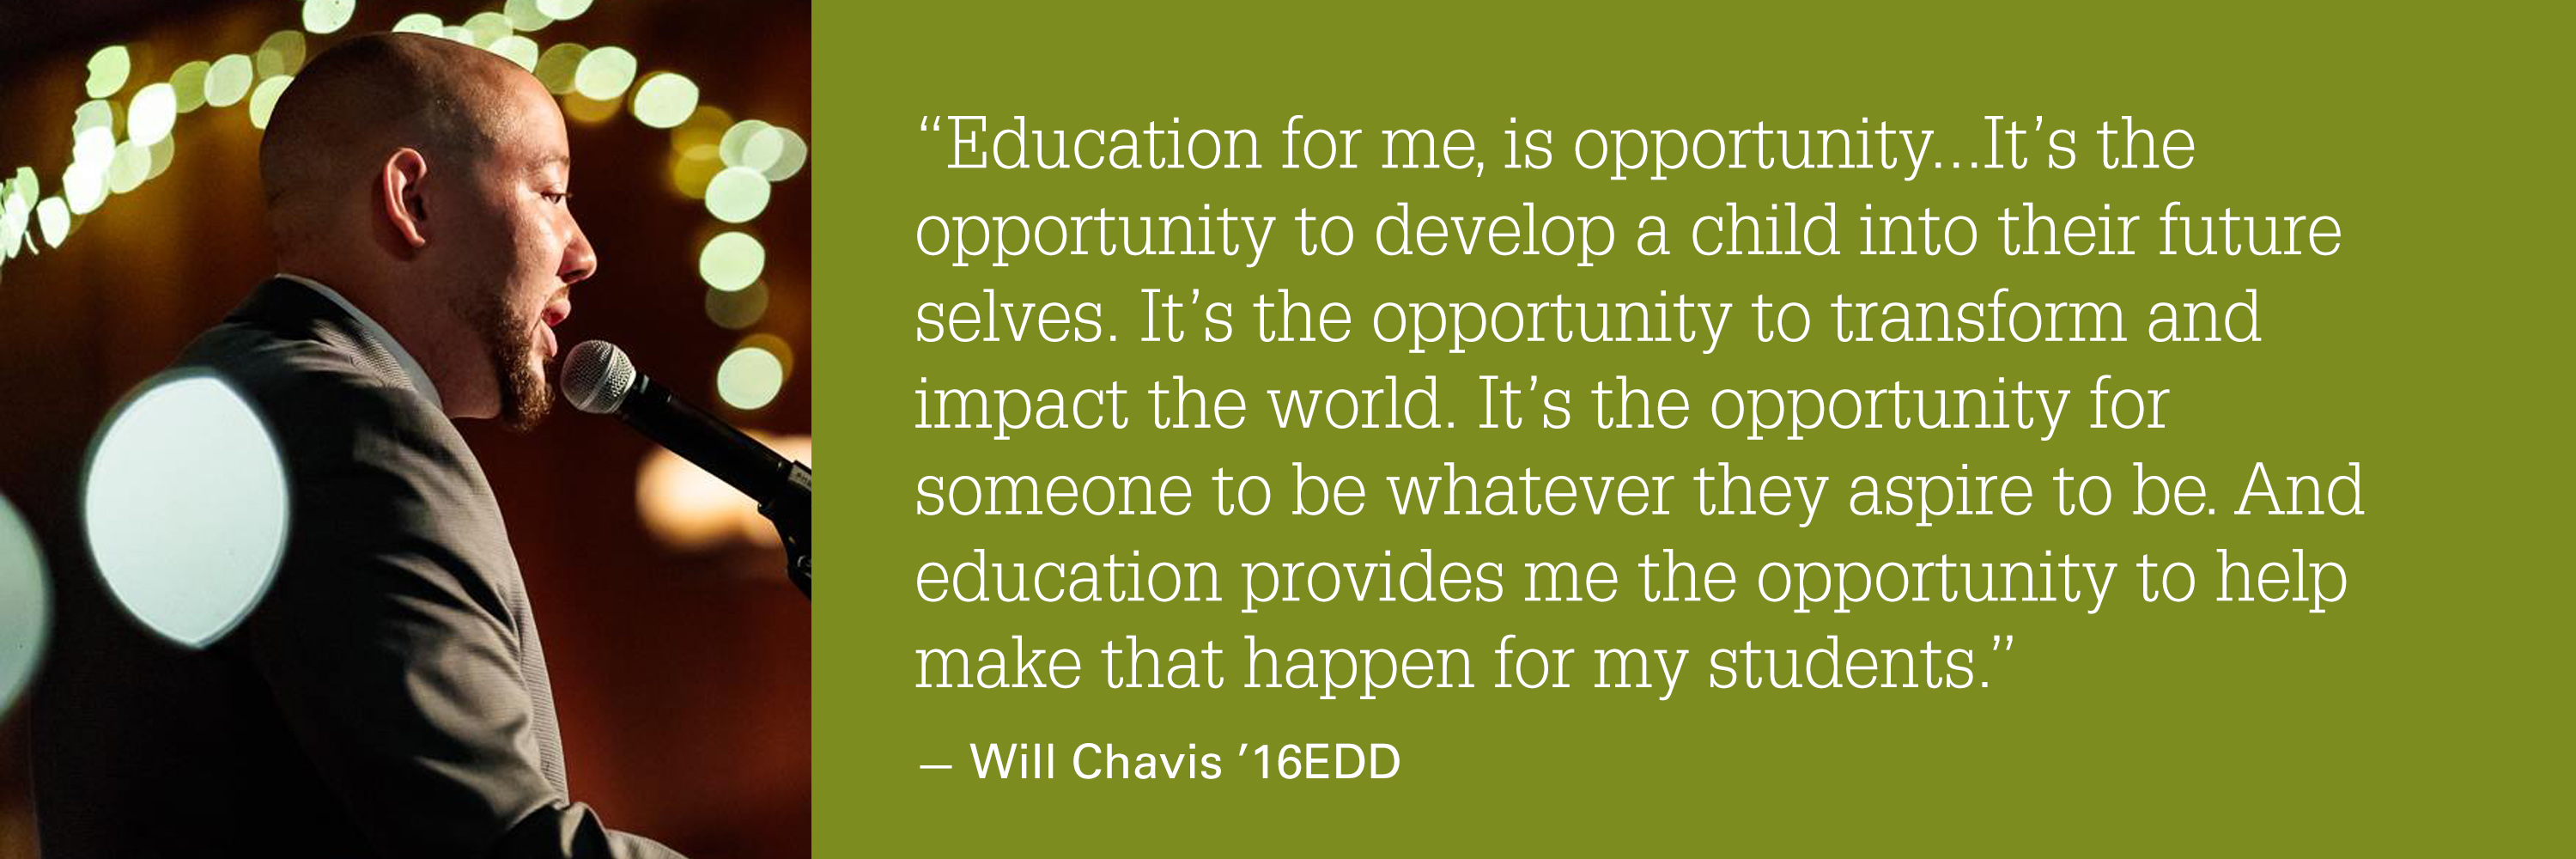 """A quote from Will Chavis - """"Education for me, is opportunity...It's the opportunity to develop a child into their future selves. It's the opportunity to transform and impact the world. It's the opportunity for someone to be whatever they aspire to be. And education provides me the opportunity to help make that happen for my students."""""""